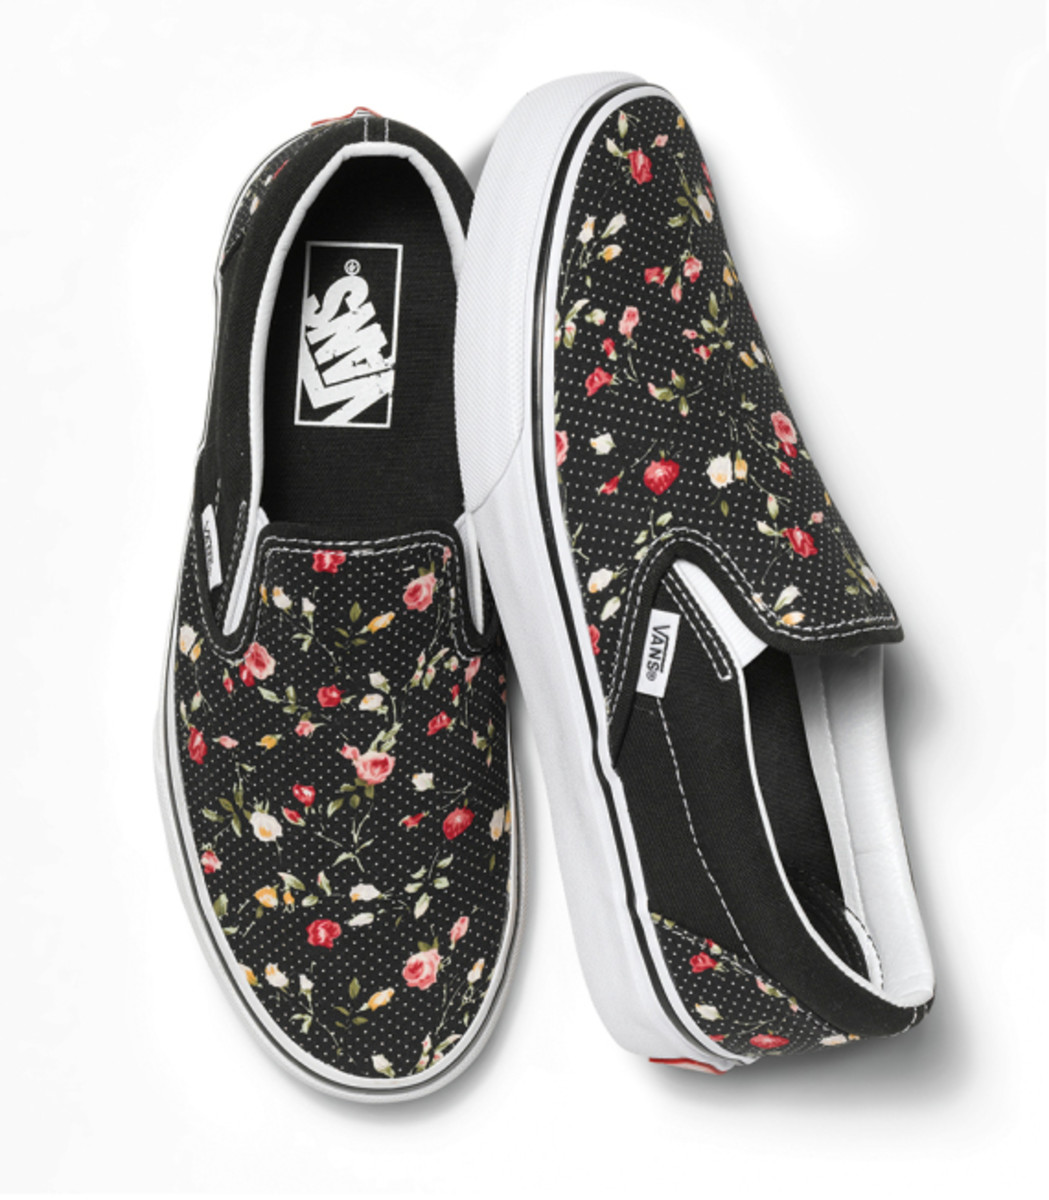 vans-womens-classic-slip-ons-holiday-2014-06